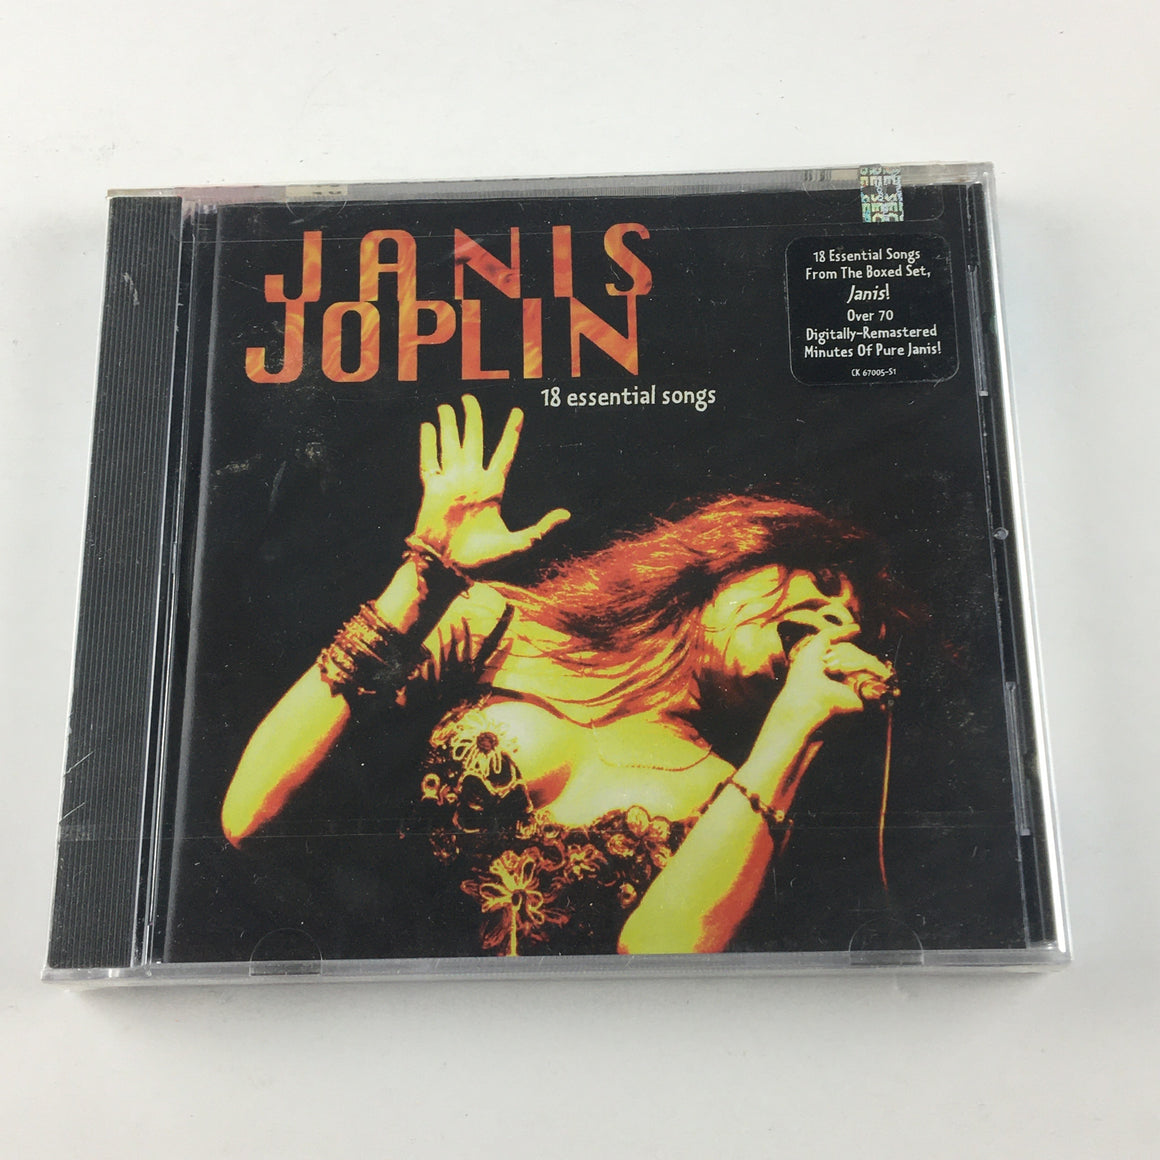 Janis Joplin 18 Essential Songs New Sealed CD M CK 67005